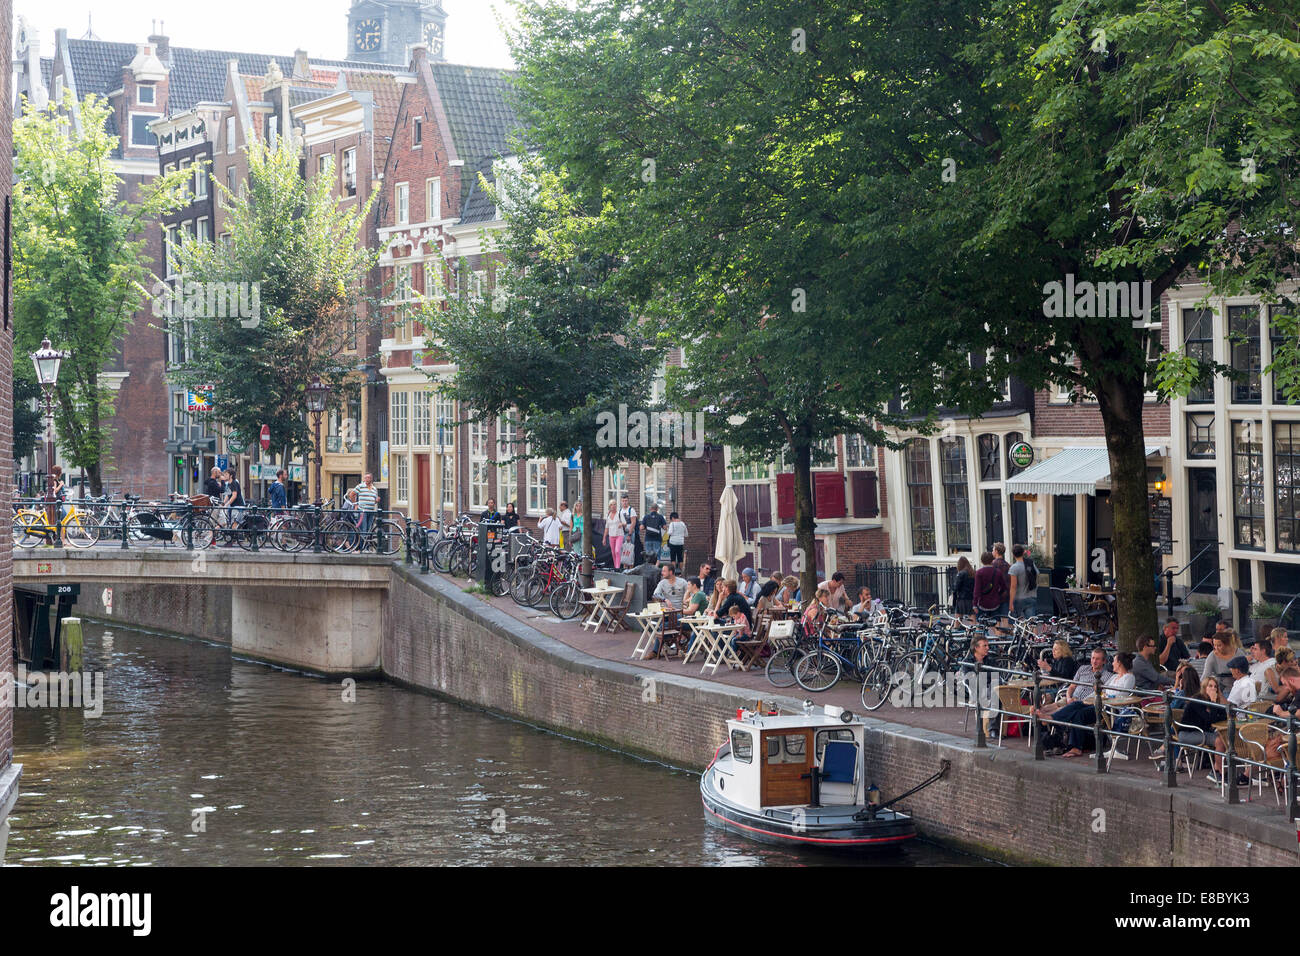 canal side cafes in central Amsterdam, Holland - Stock Image